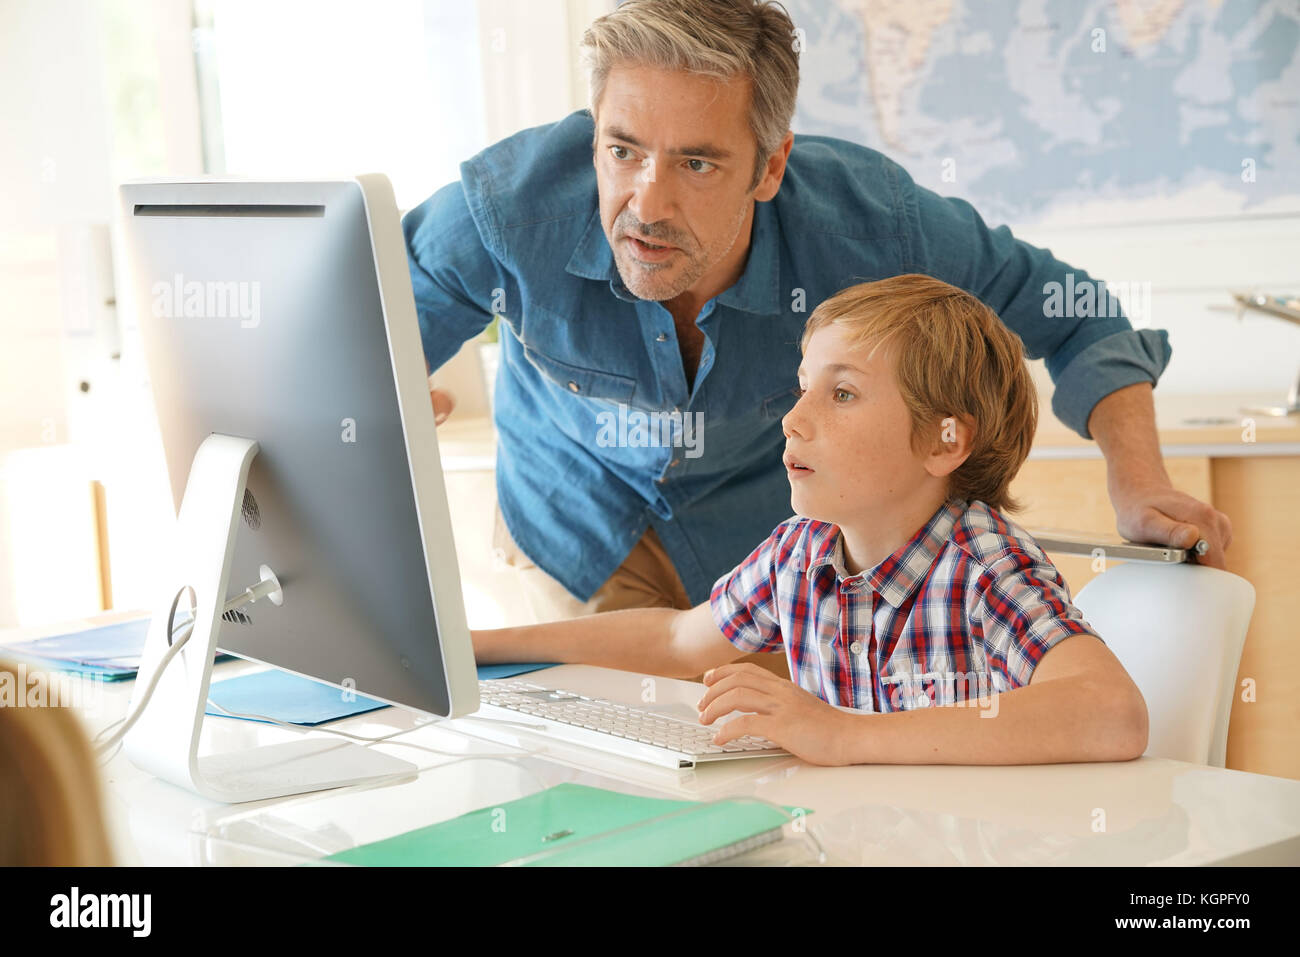 Schoolboy in computer lab with teacher helping - Stock Image